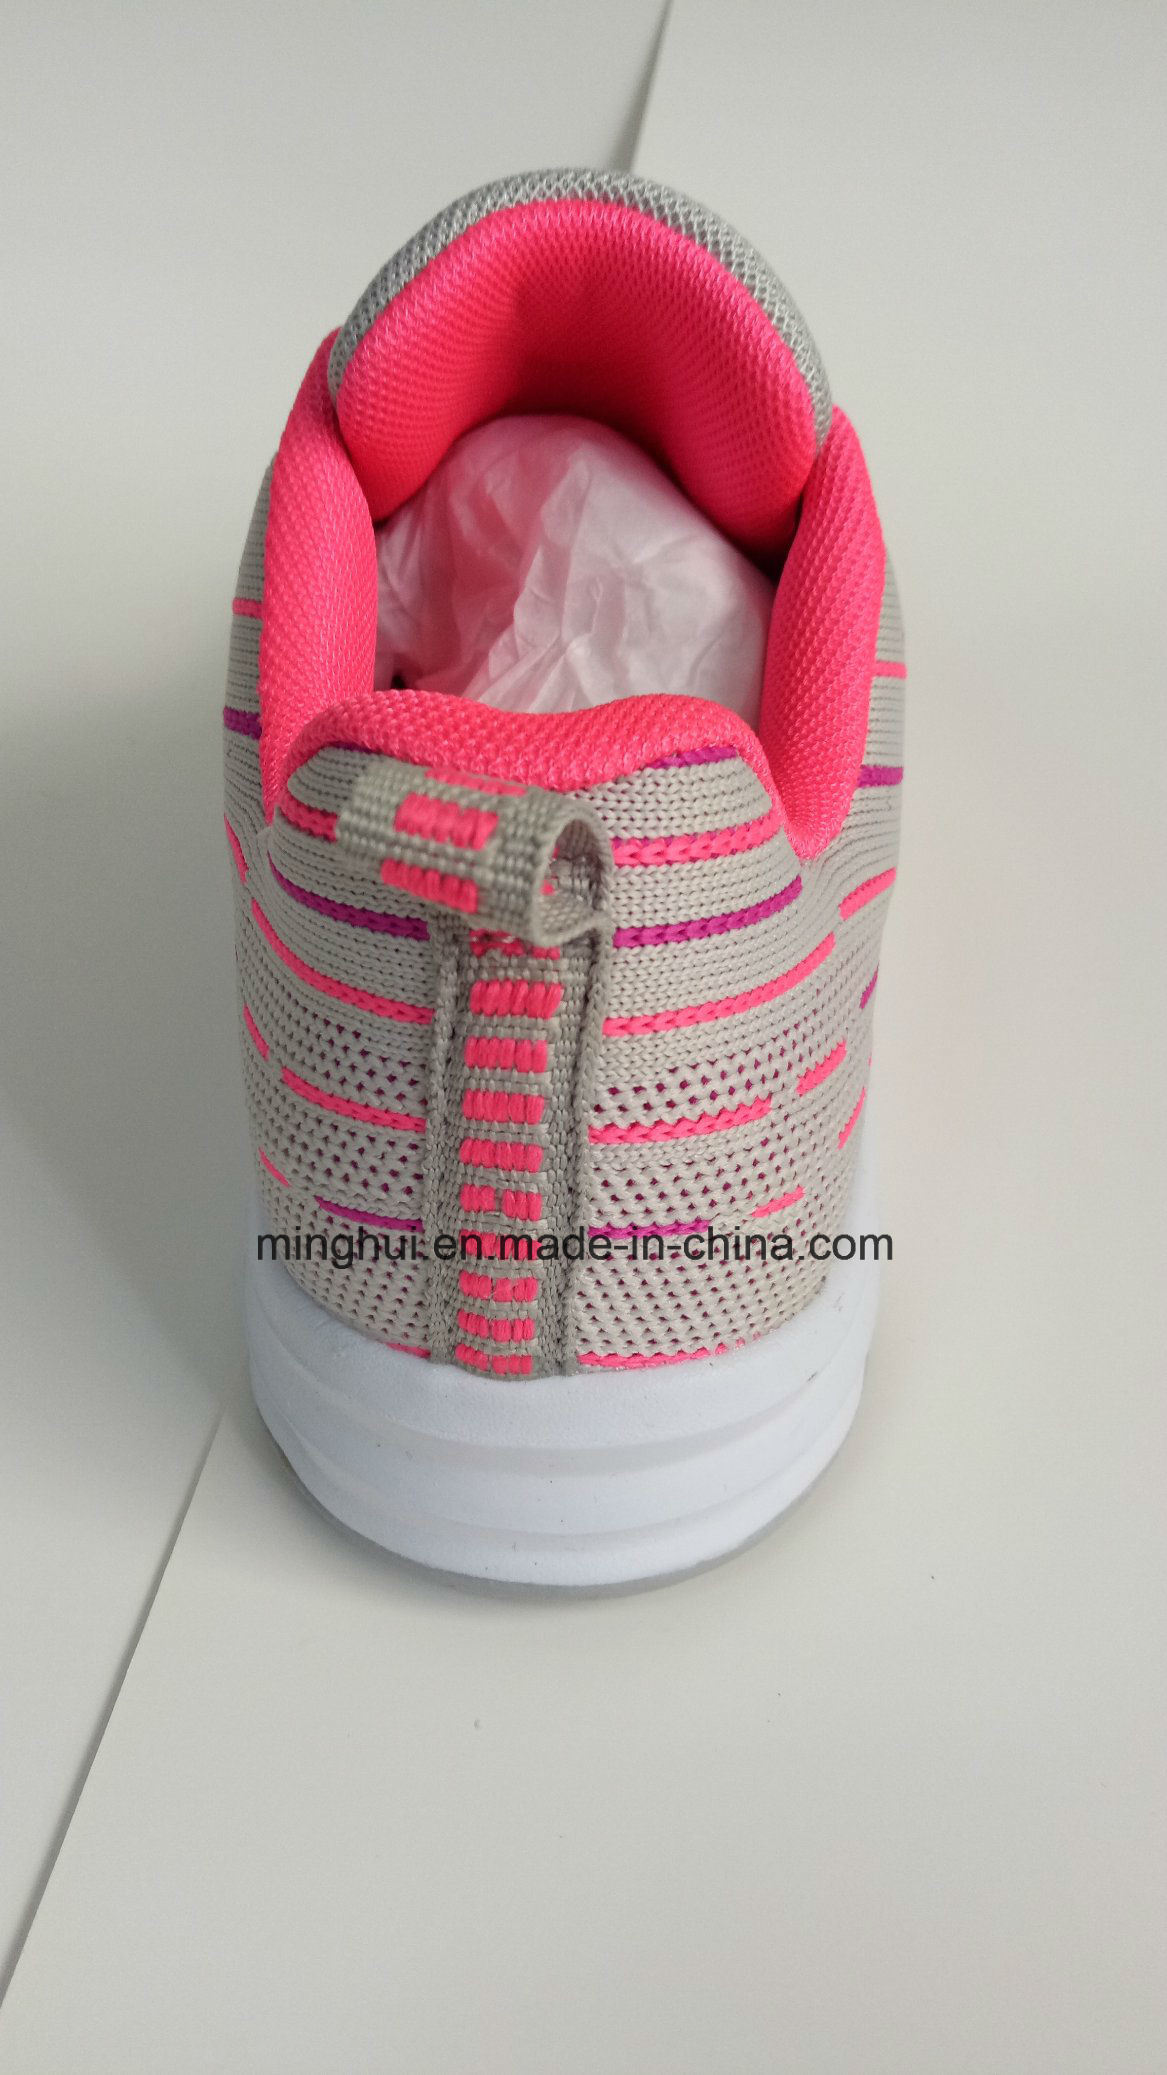 Good Price Newest Design Footwear Running Shoes Sports Shoes